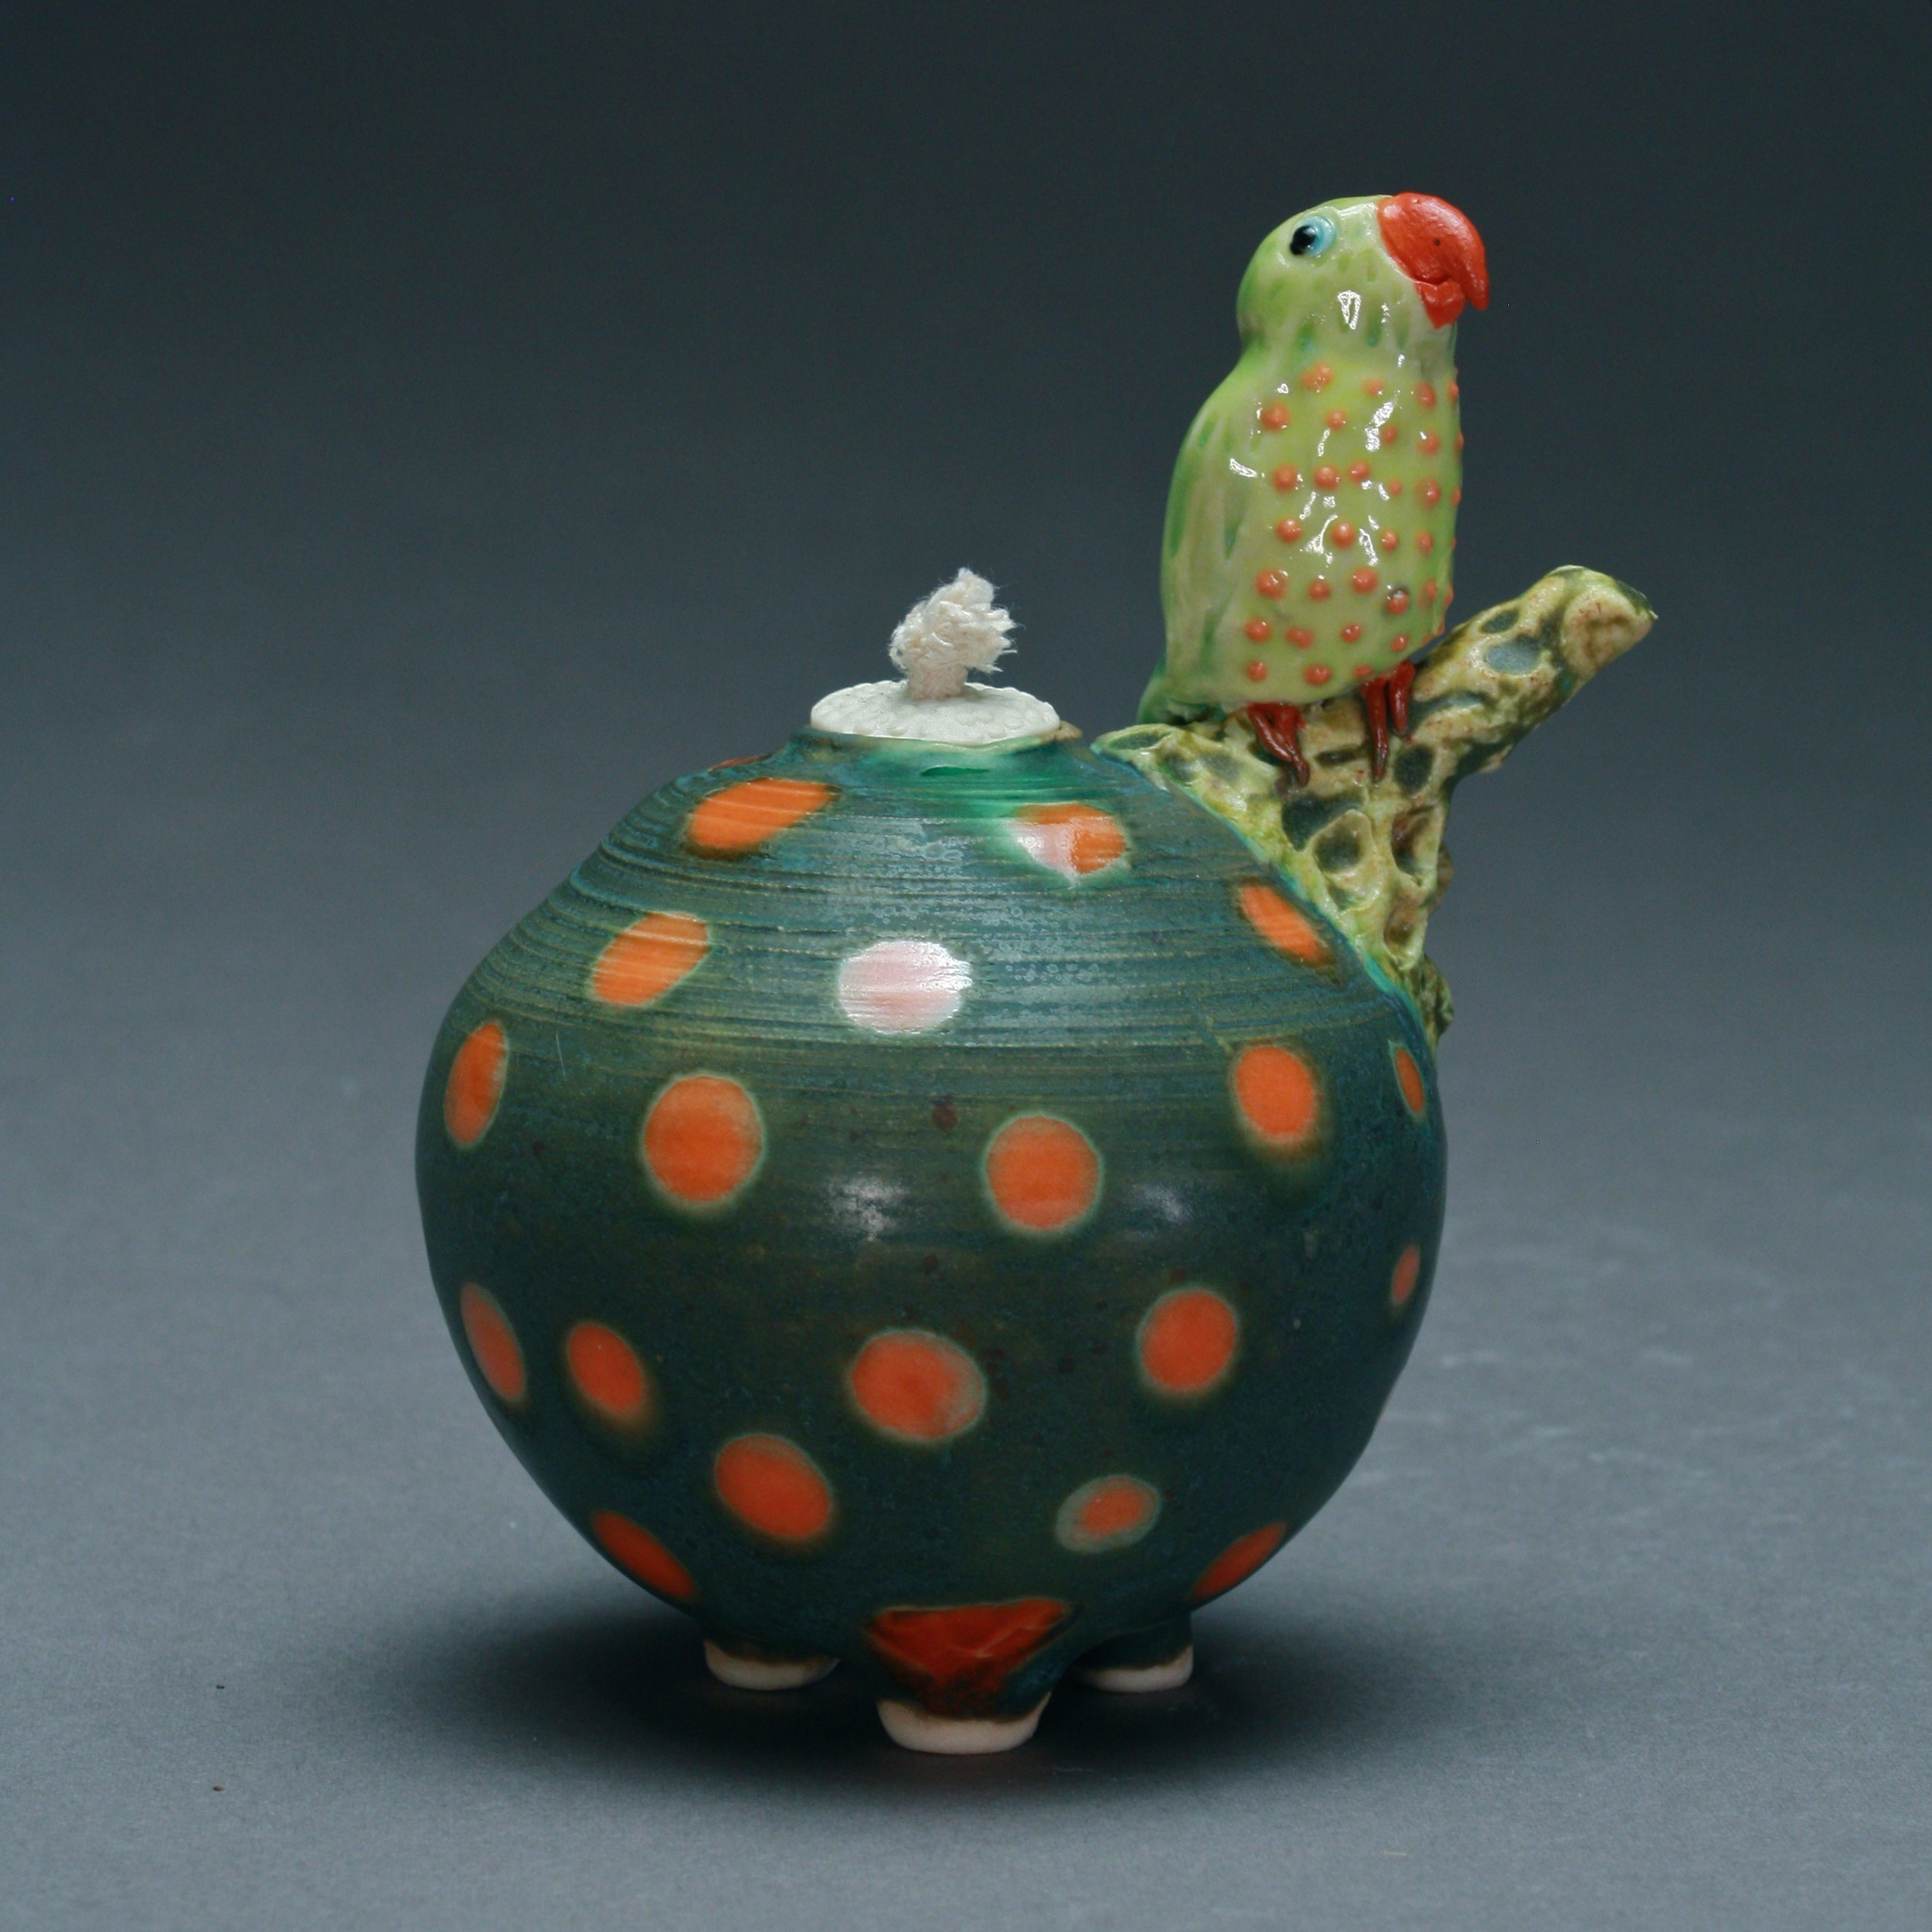 OL-08 | Orange Spotted Dark Green Oil Lamp with Parrot ($150)